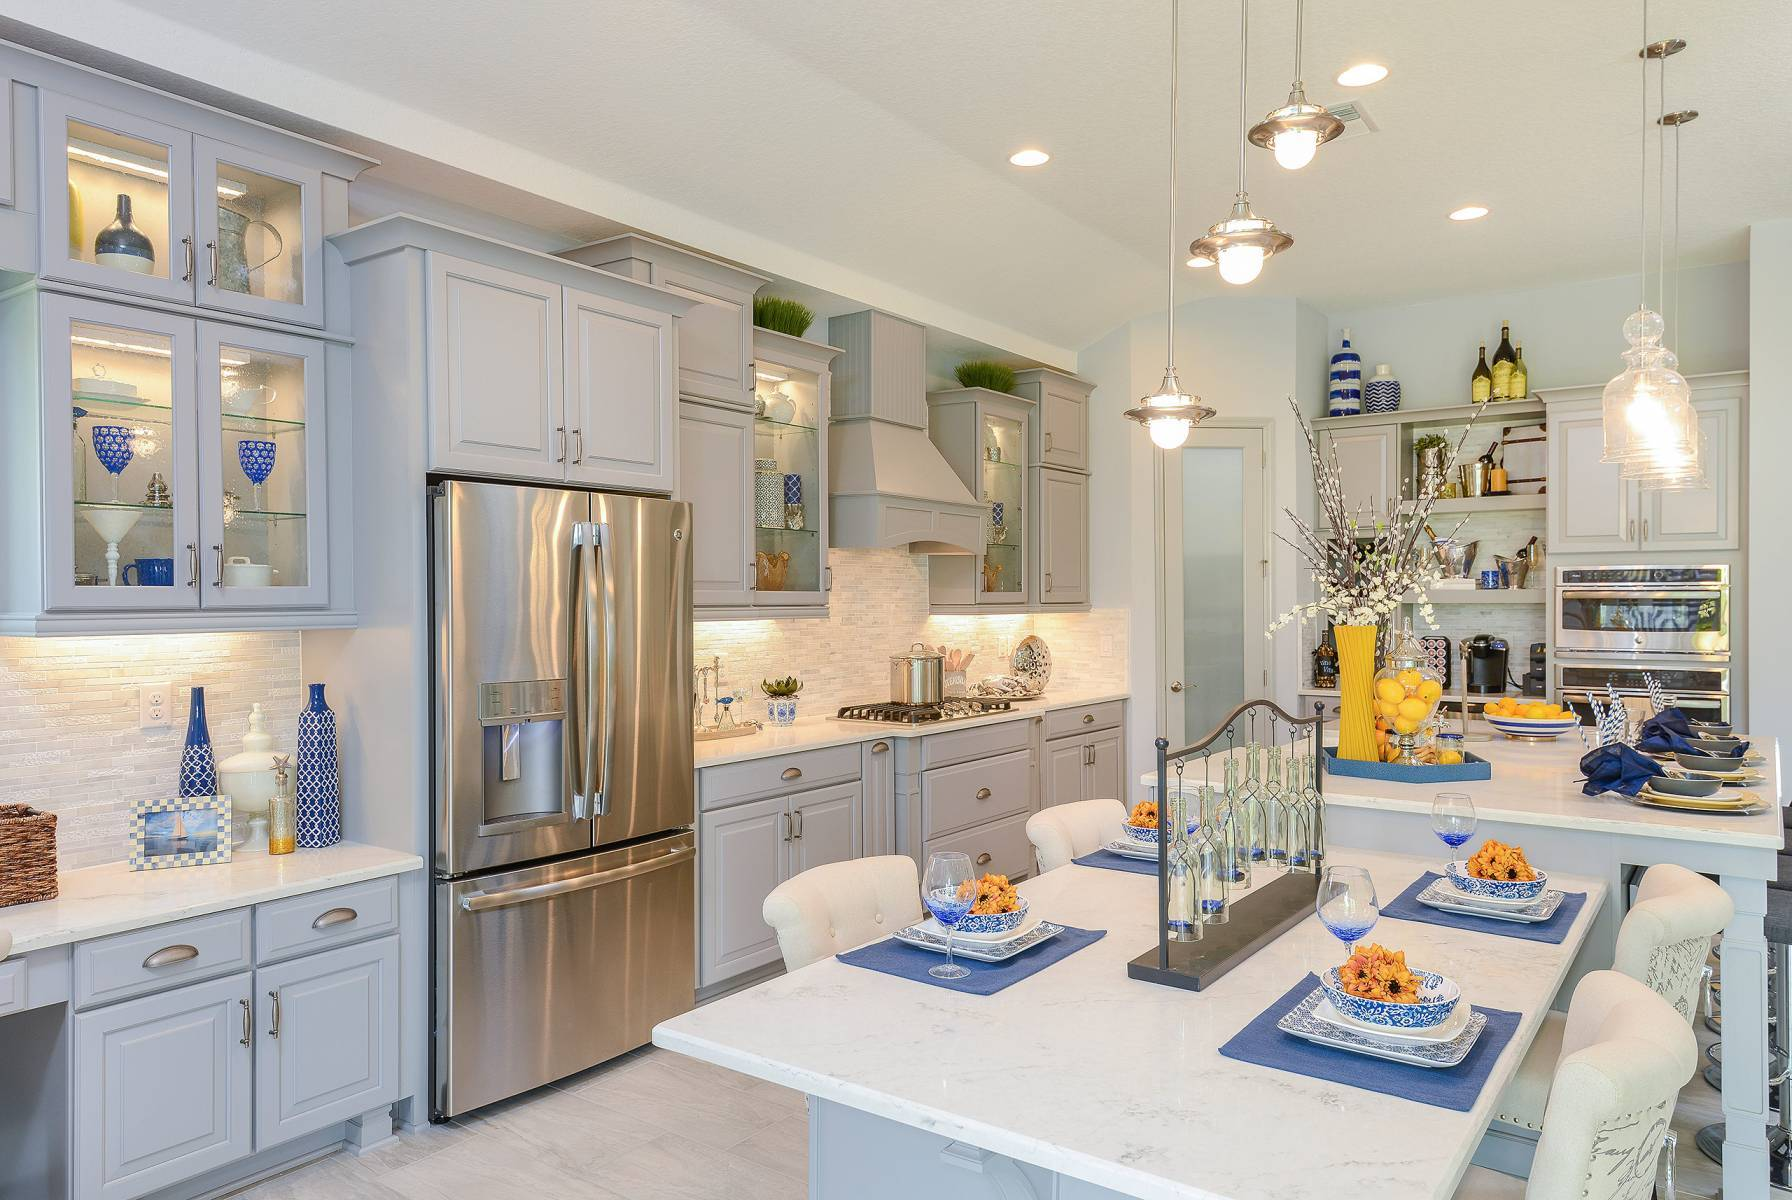 Kitchen featured in the Bayshore I By Homes by WestBay in Tampa-St. Petersburg, FL